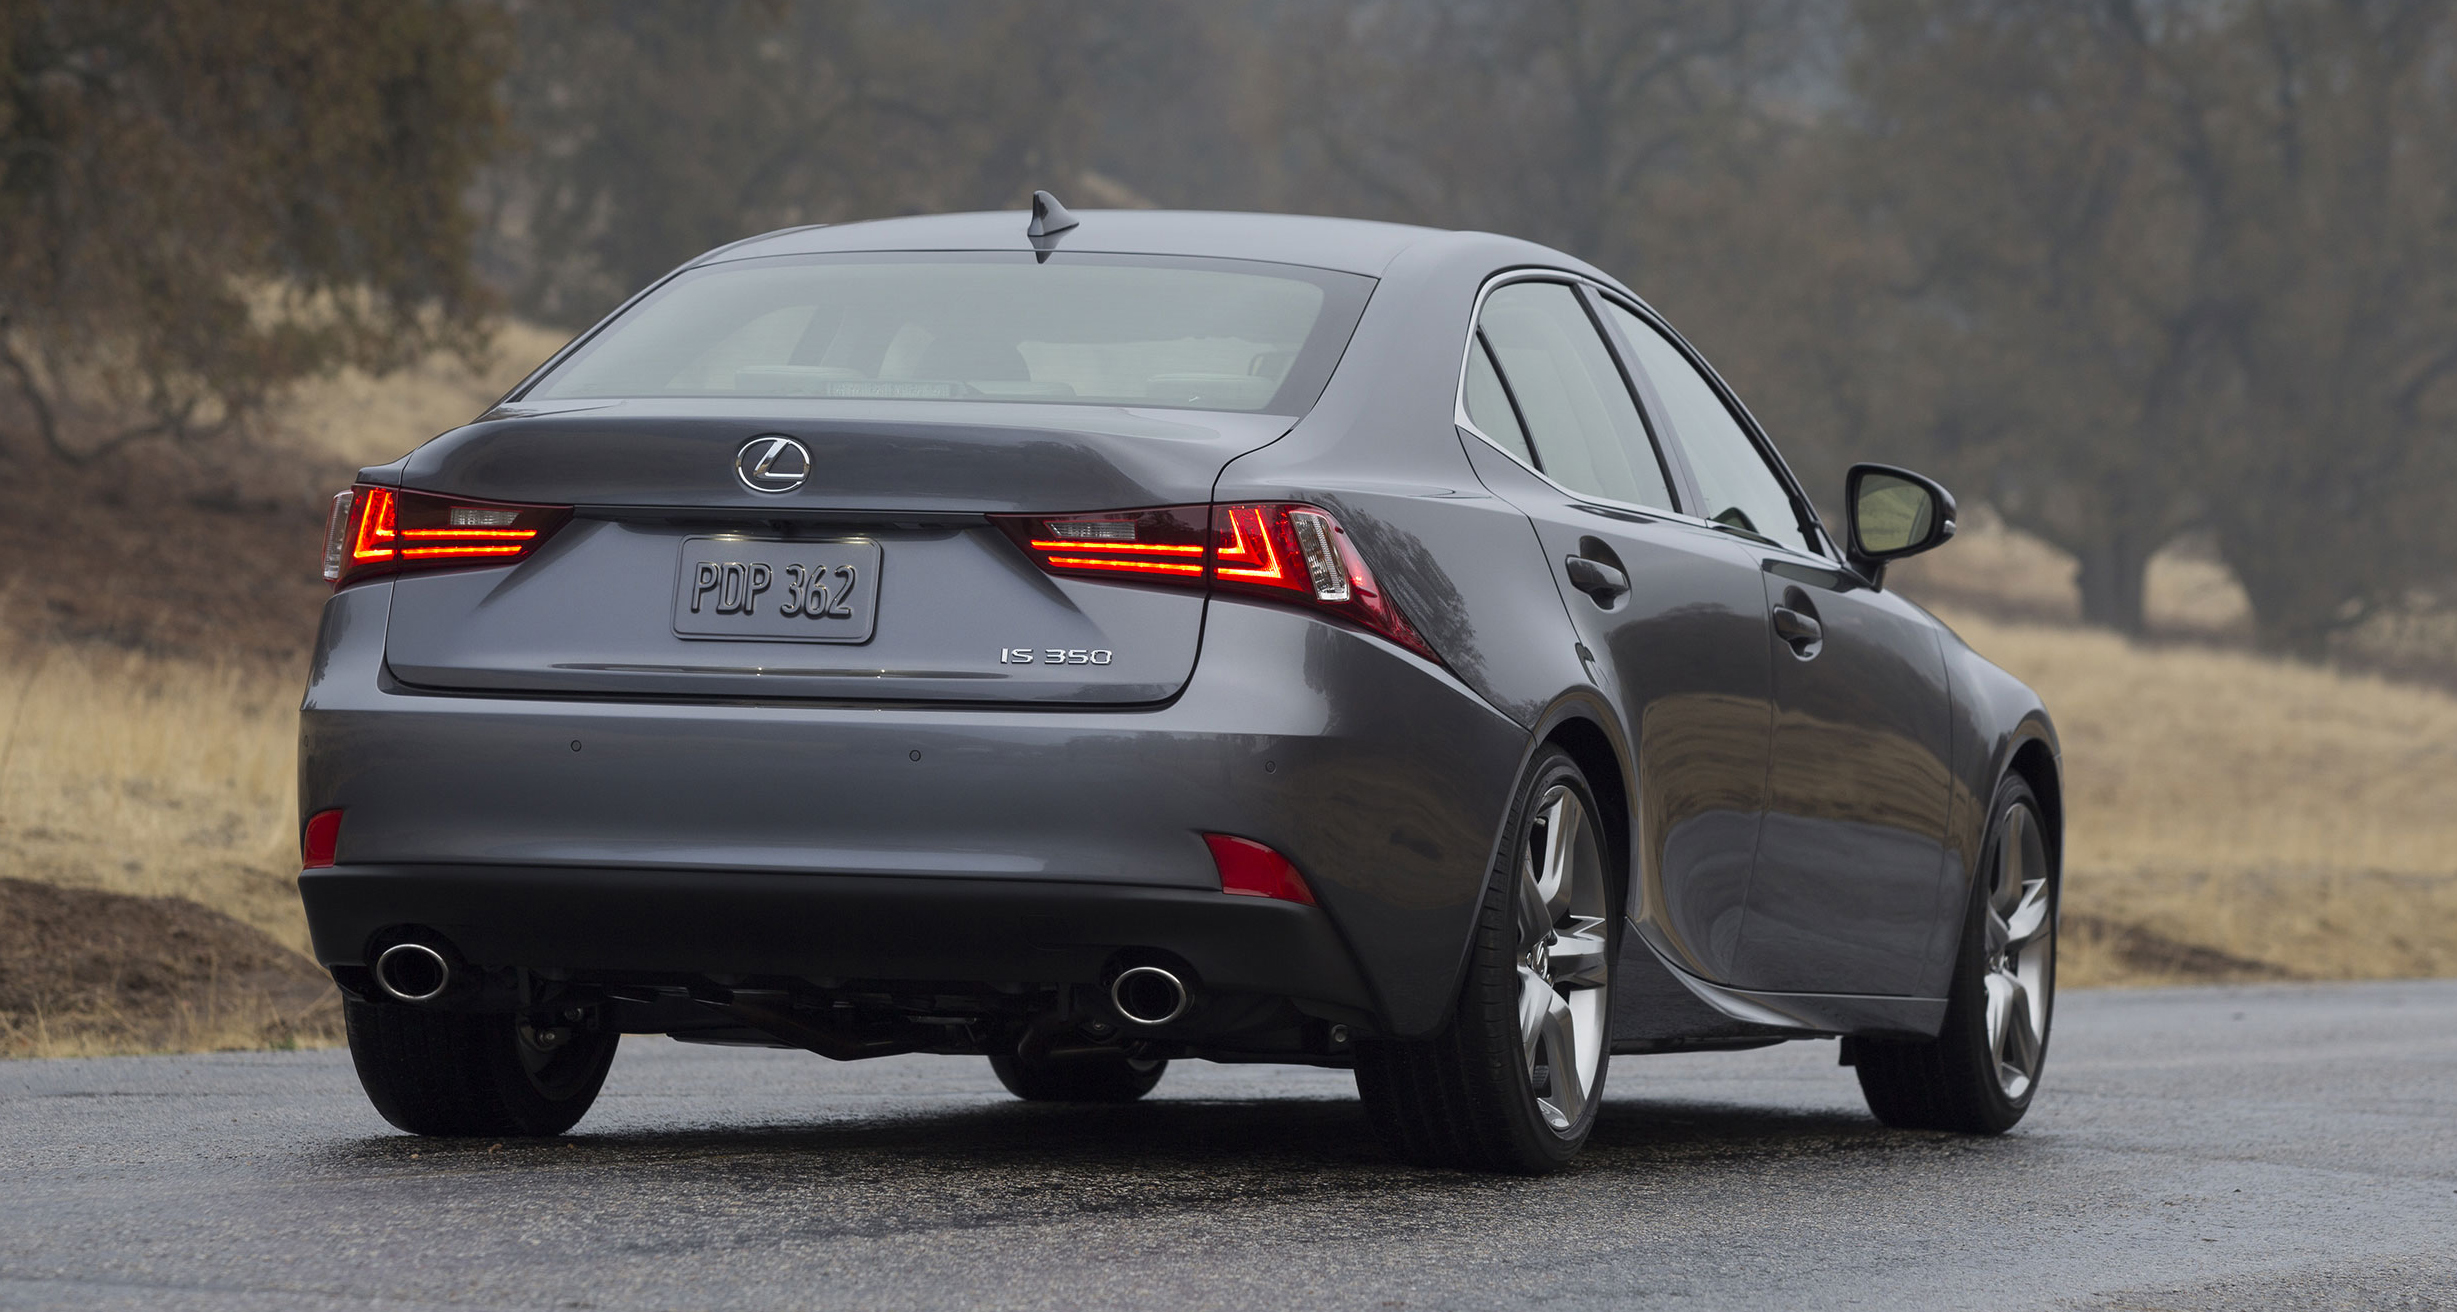 pearl awd nebula f build forums is lexus clublexus threads sport gray